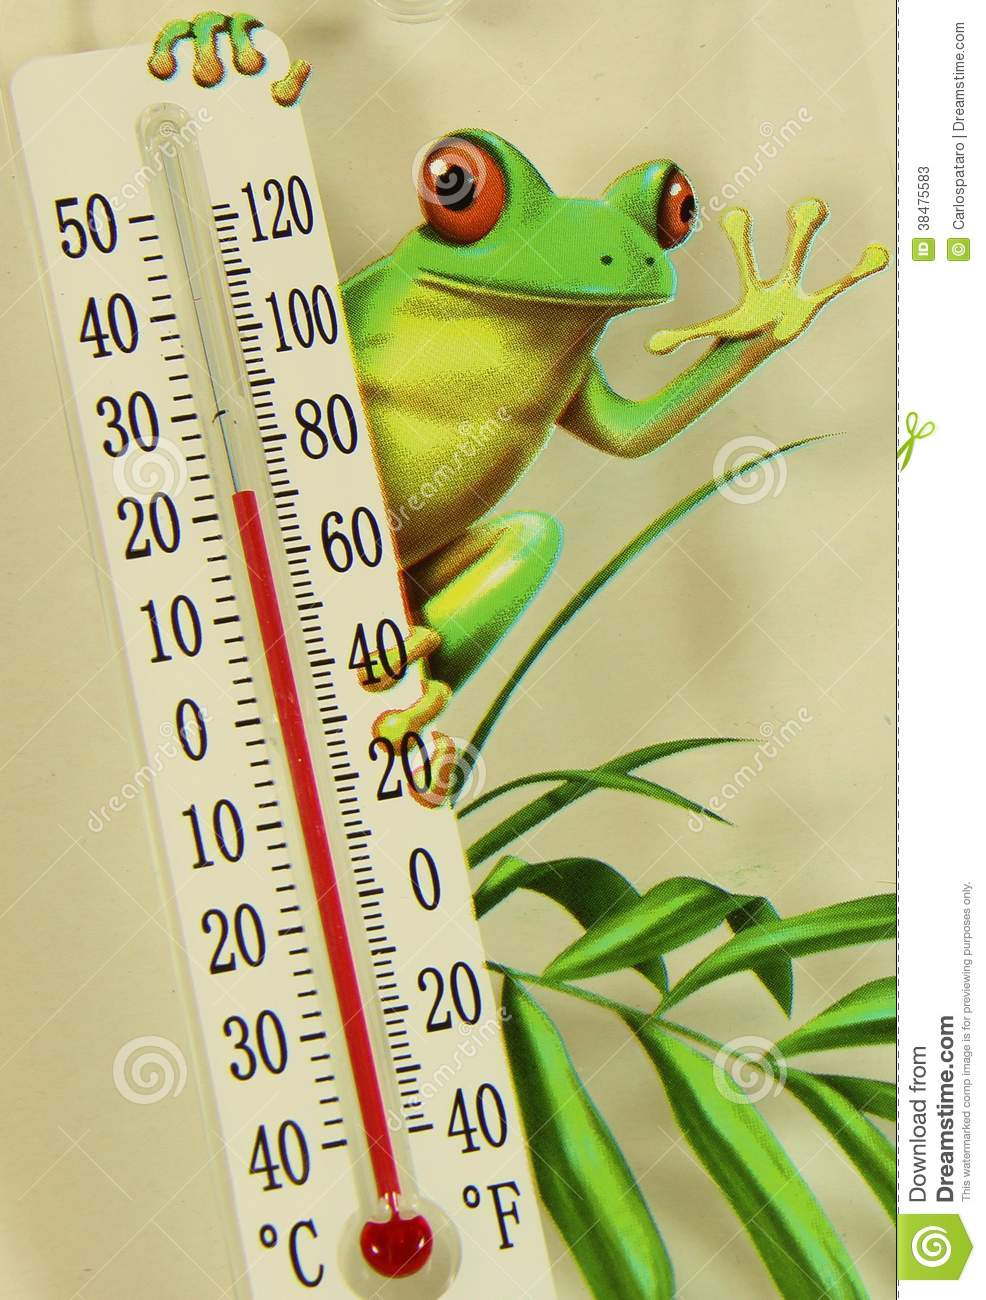 reptiles thank you for global warming Why a warming world could turn cold  only source i know talking about the effect low sunspot activity is likely to have to temporarily offset some of the warming fascinating stuff and thank you the first report of a warming period was in 1964  chemtrails have nothing to do with global warming, but all to do with dumbing down the.